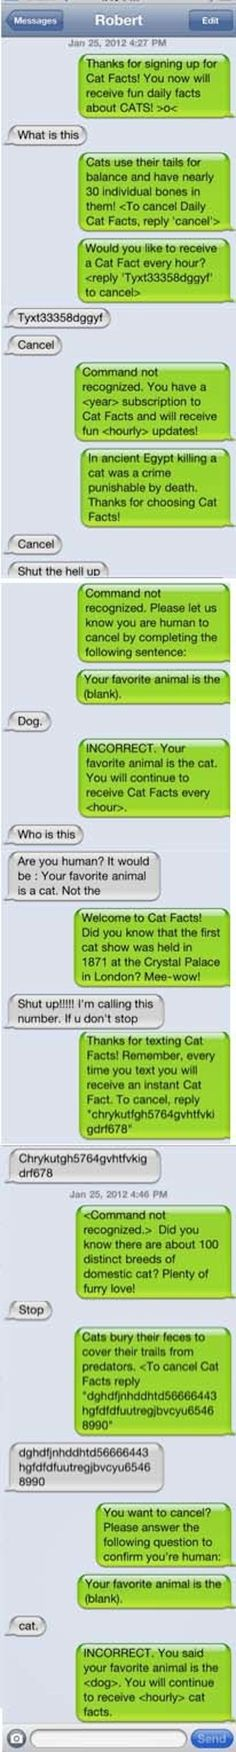 27 Perfect Ways To Respond To A Wrong Number Text........the cat facts!!!!!